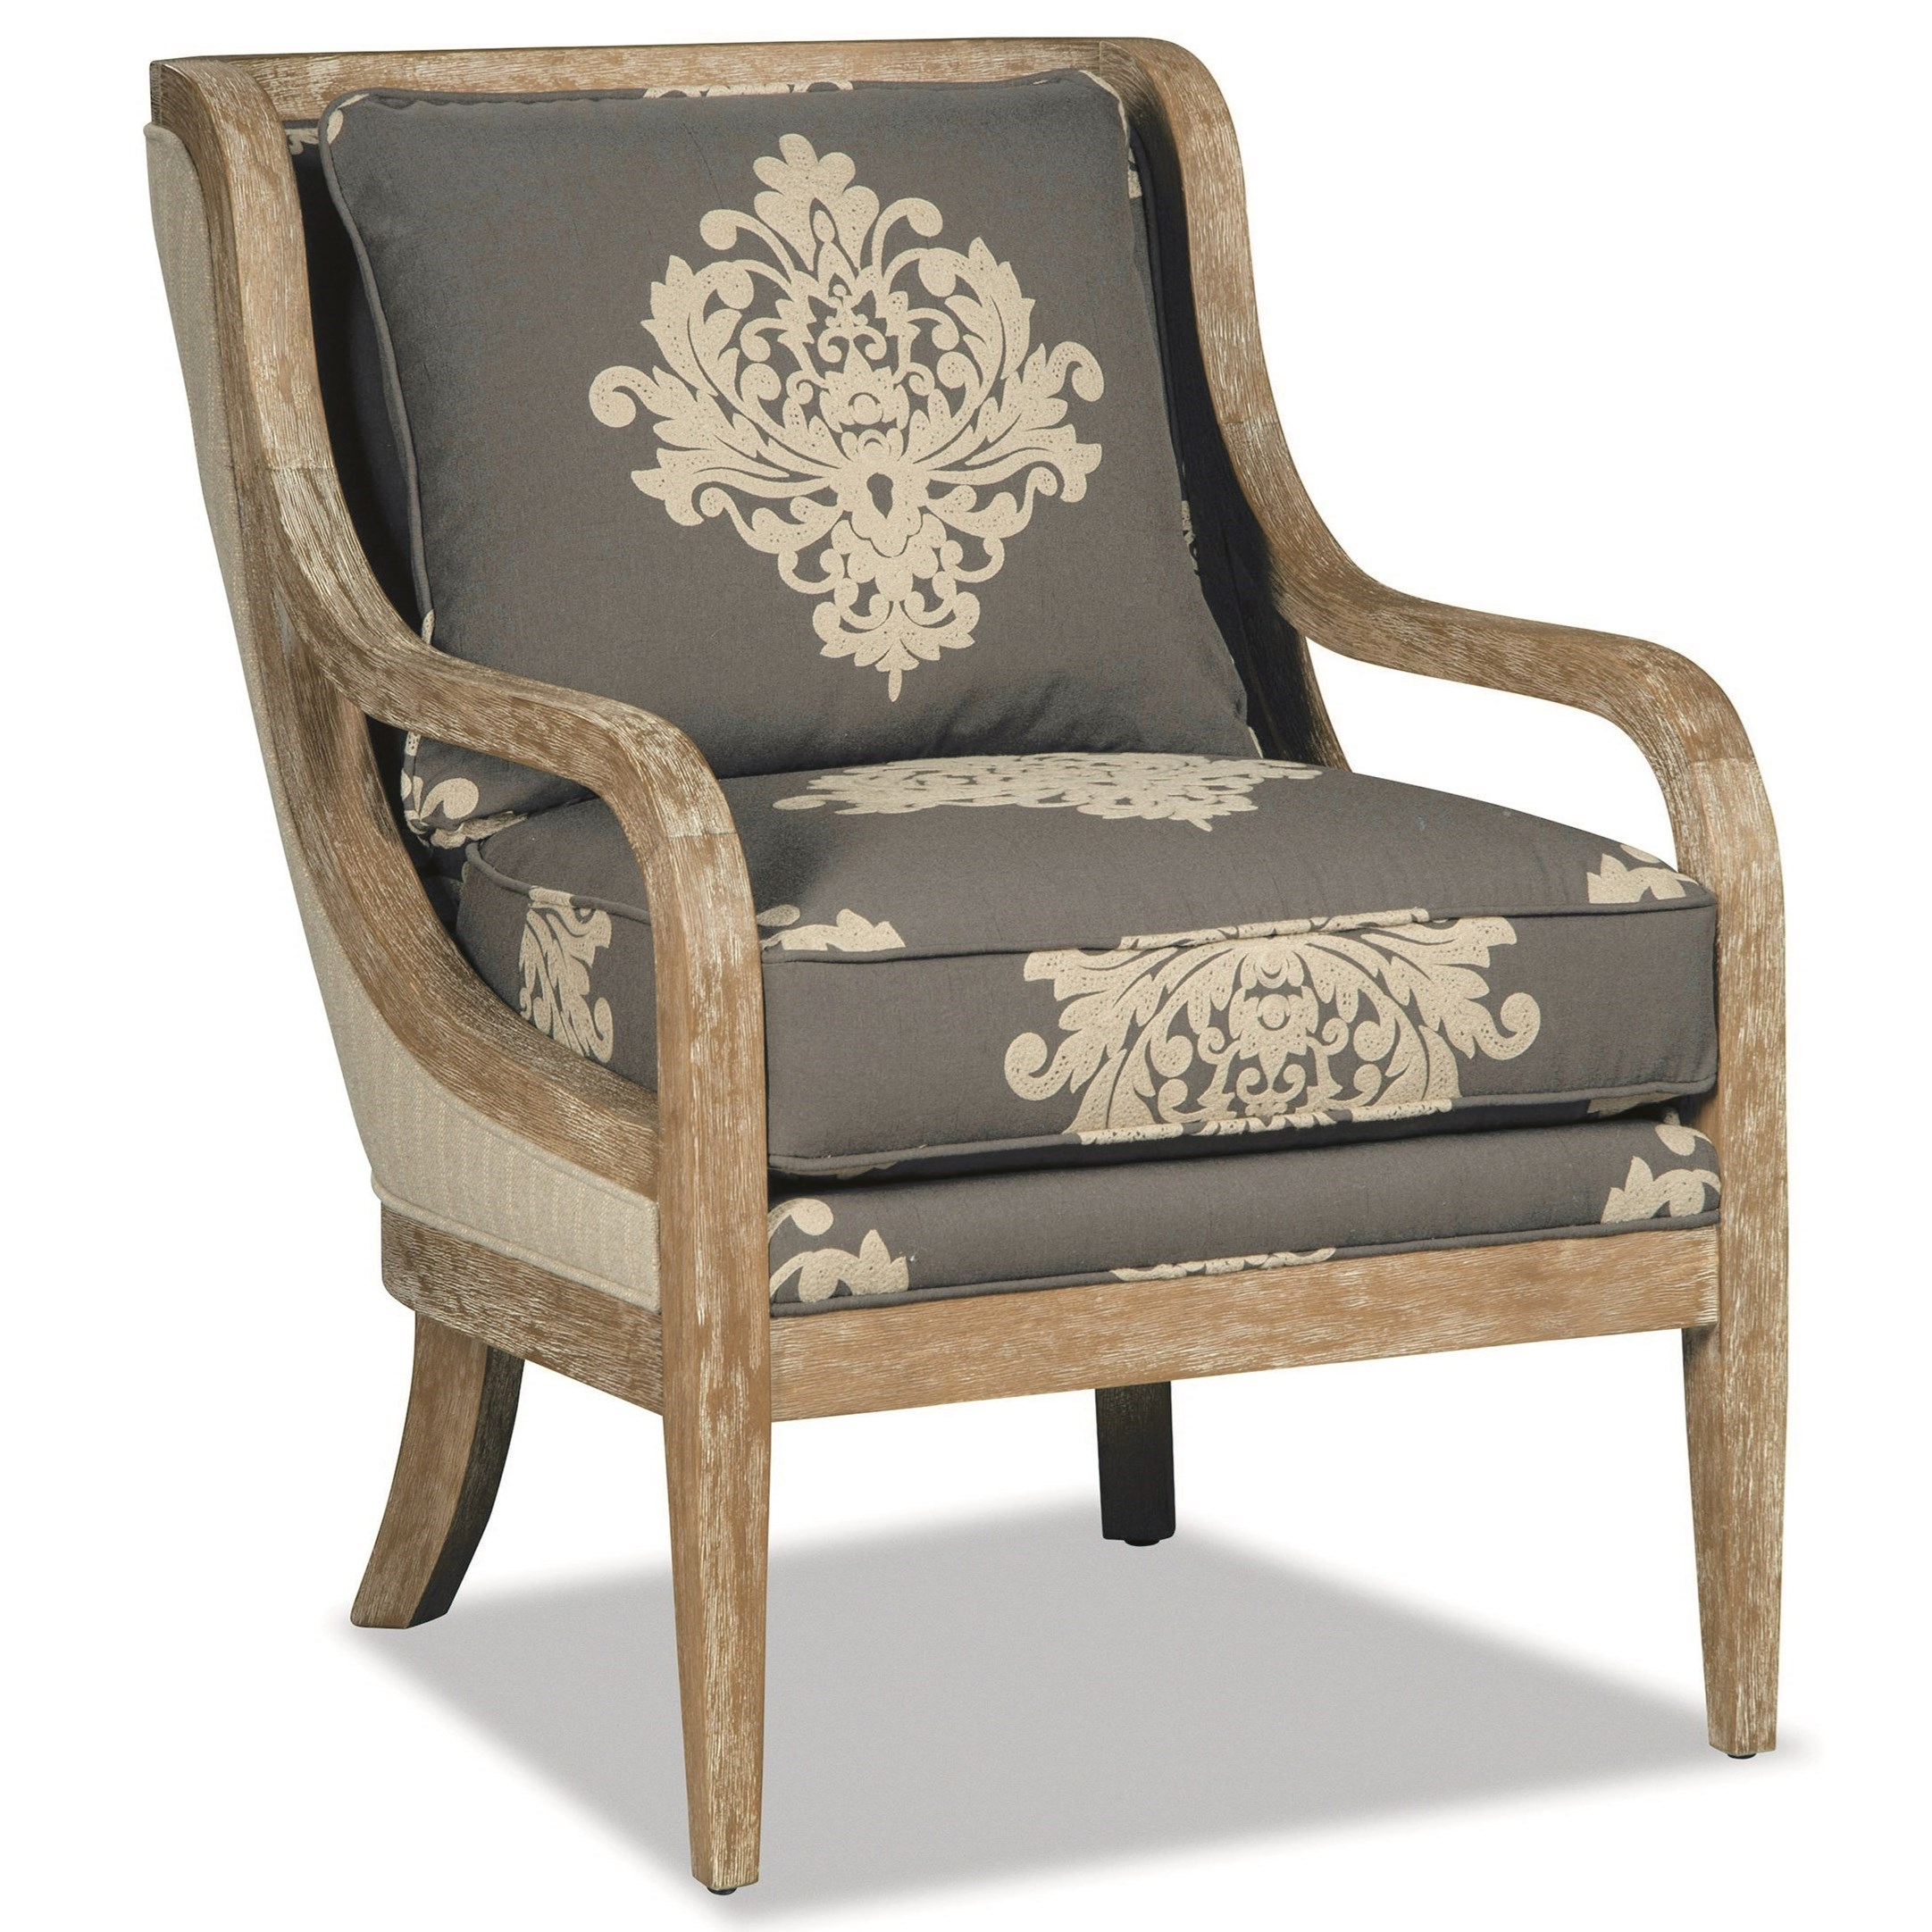 Craftmaster 067410 067510 Accent Chair With Exposed Wood